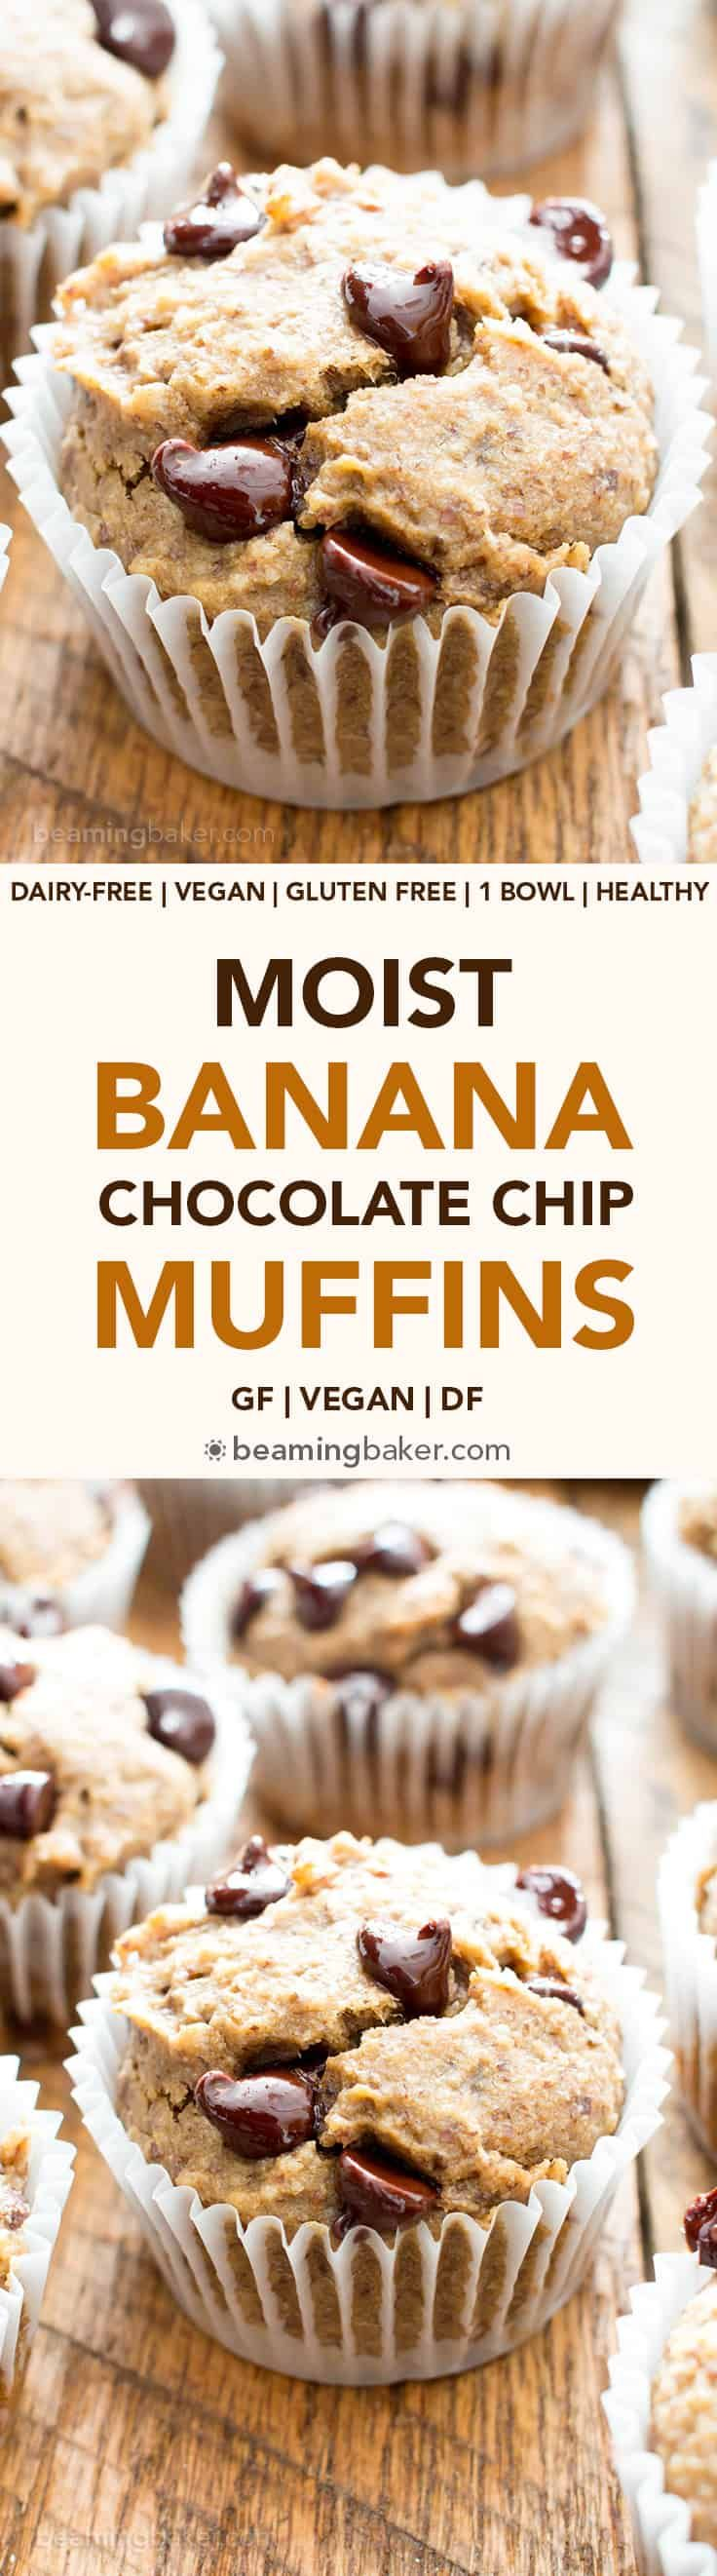 Moist Banana Chocolate Chip Muffins V Gf A One Bowl Recipe For